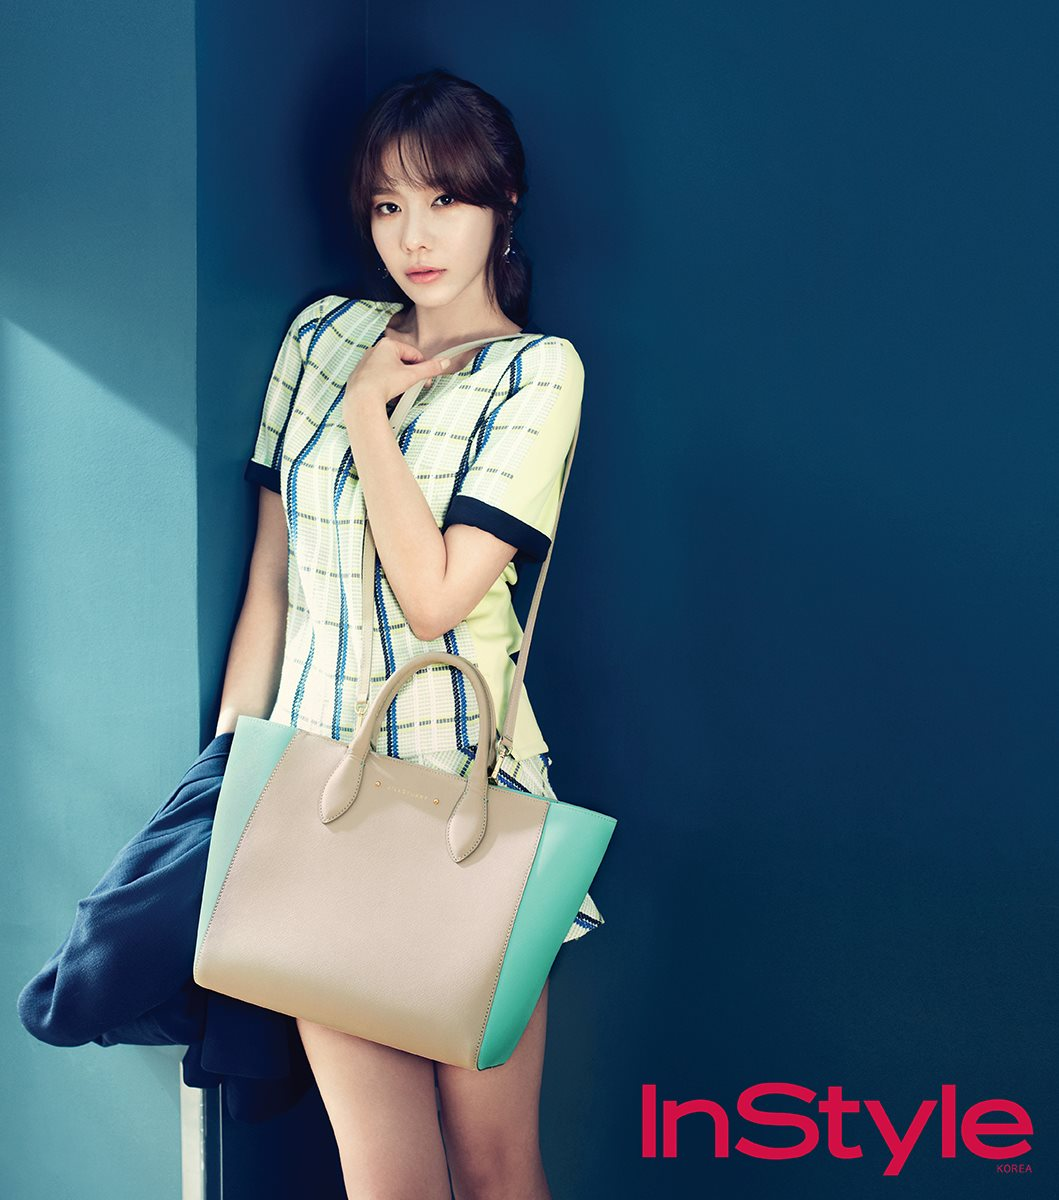 Kim Ah Joong For Cosmopolitan And InStyle